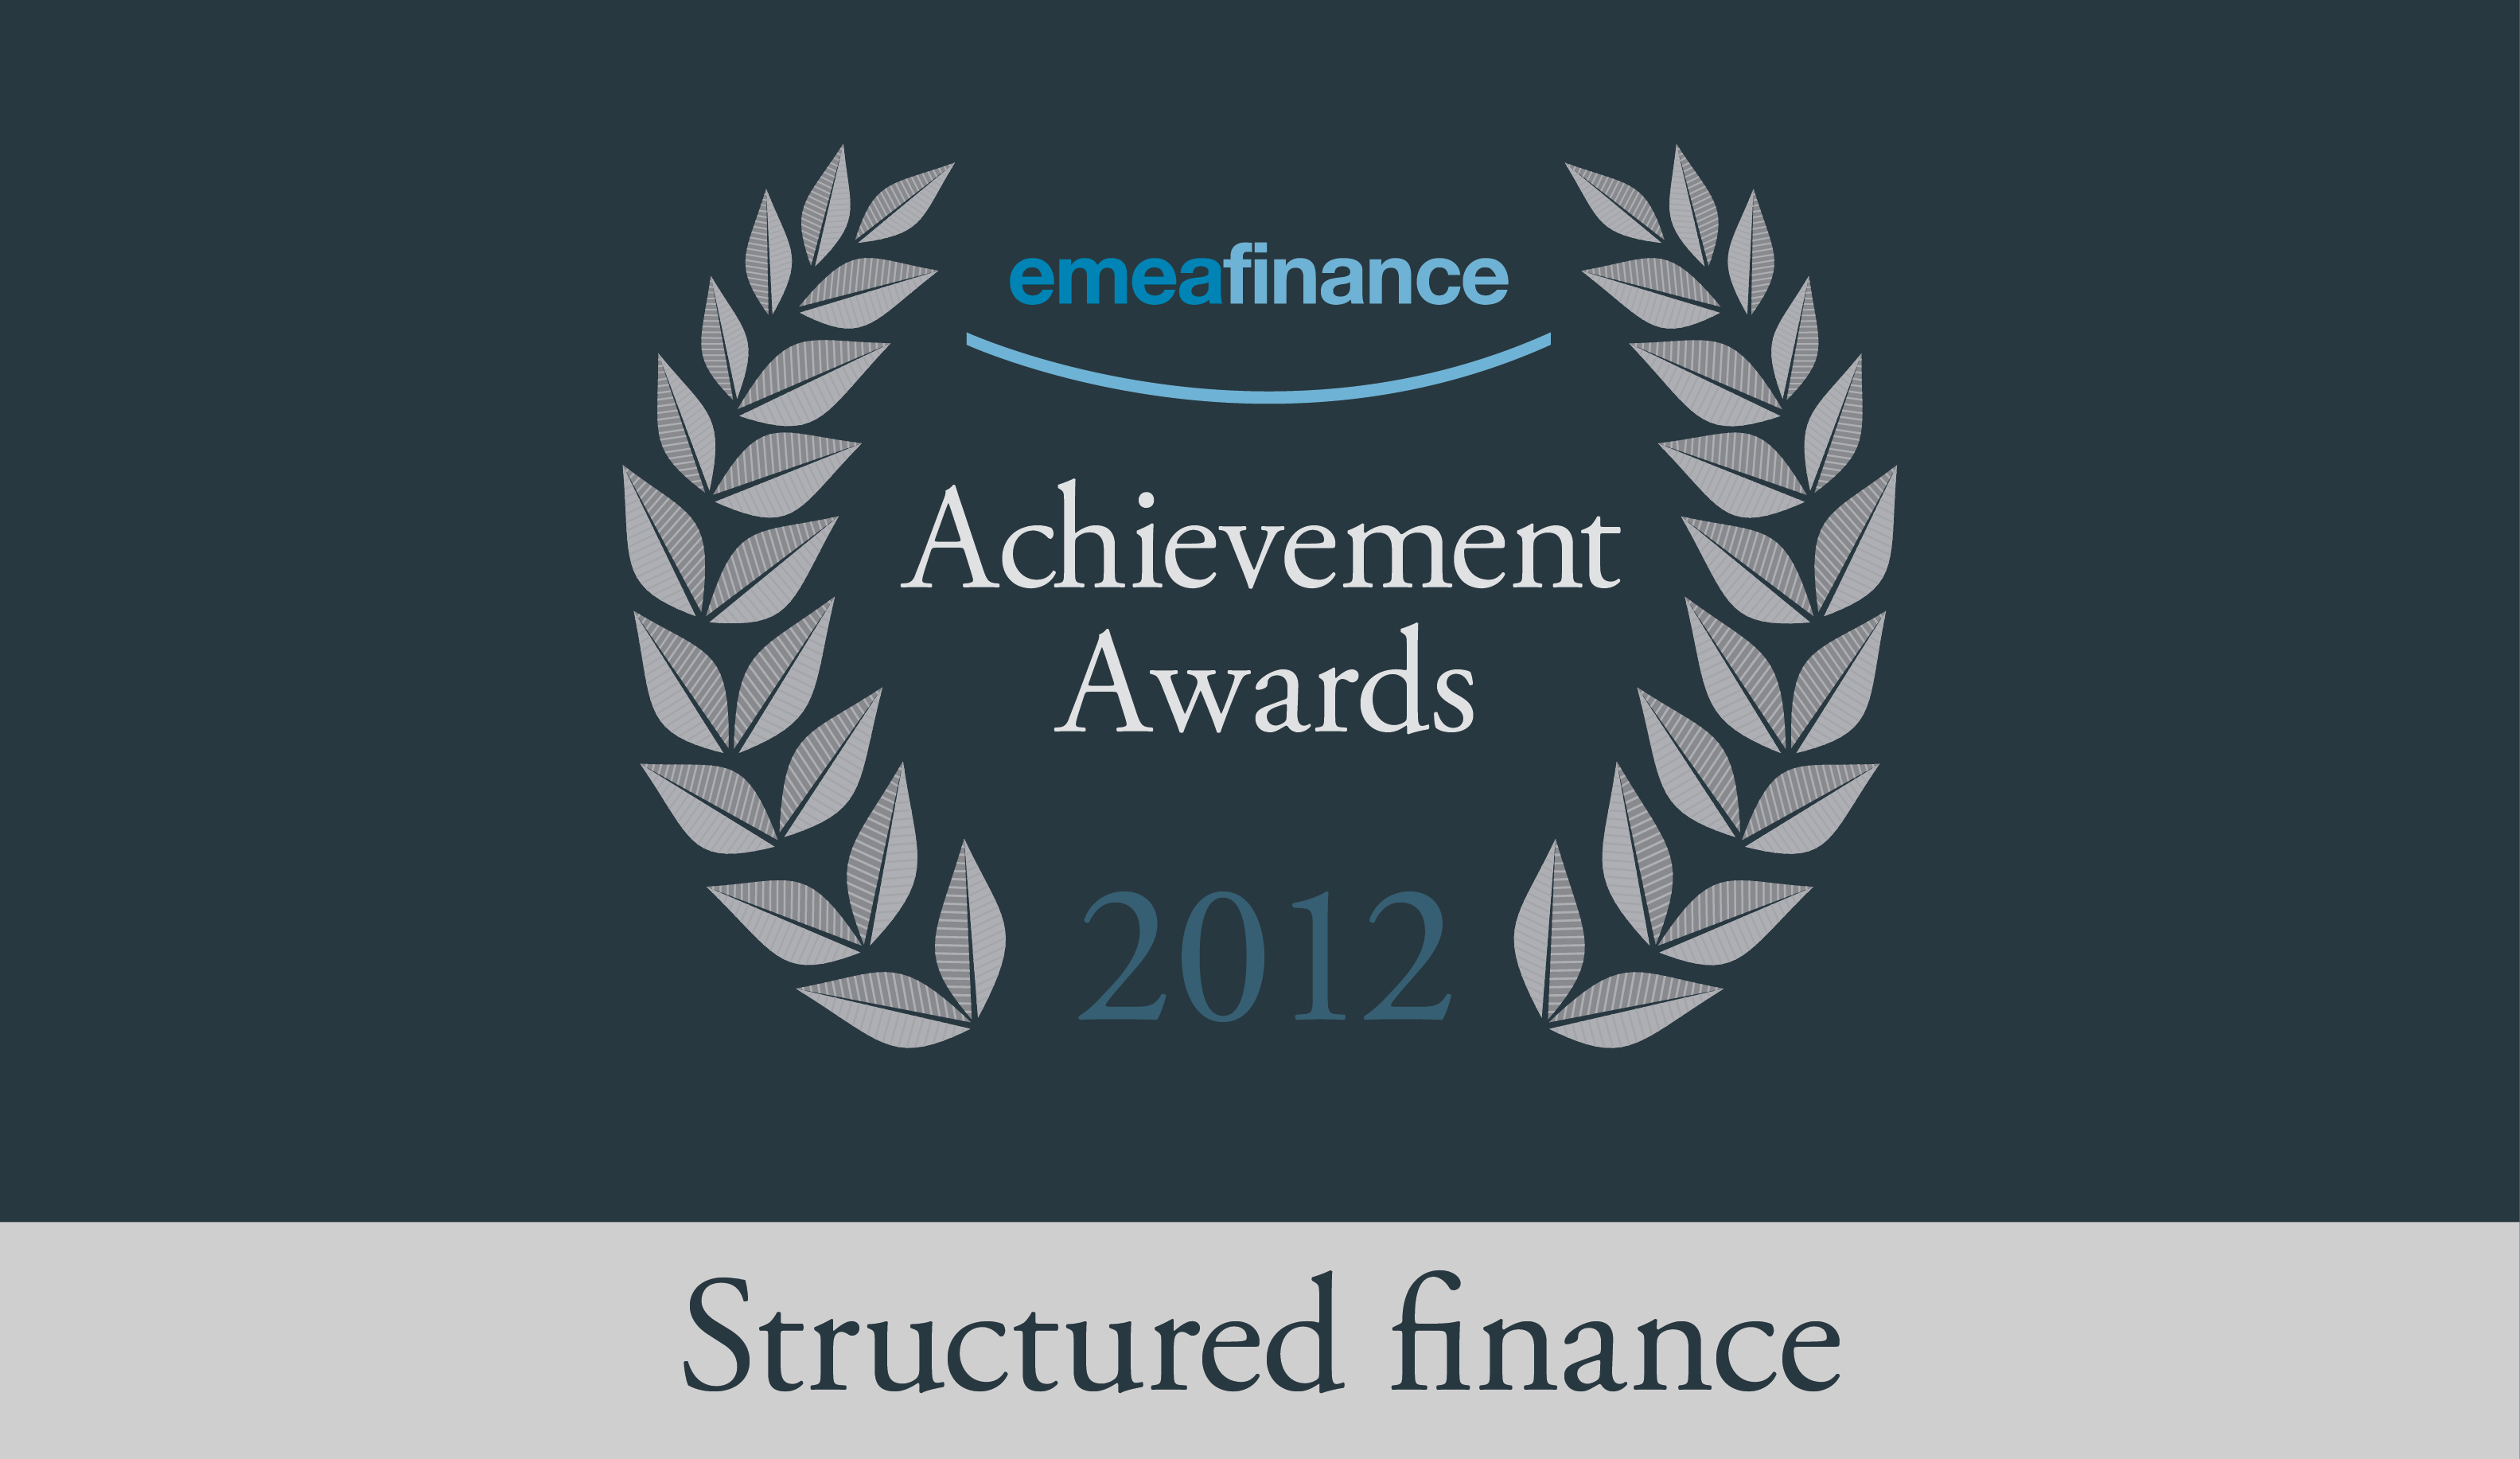 Achievement Awards 2012: Structured finance